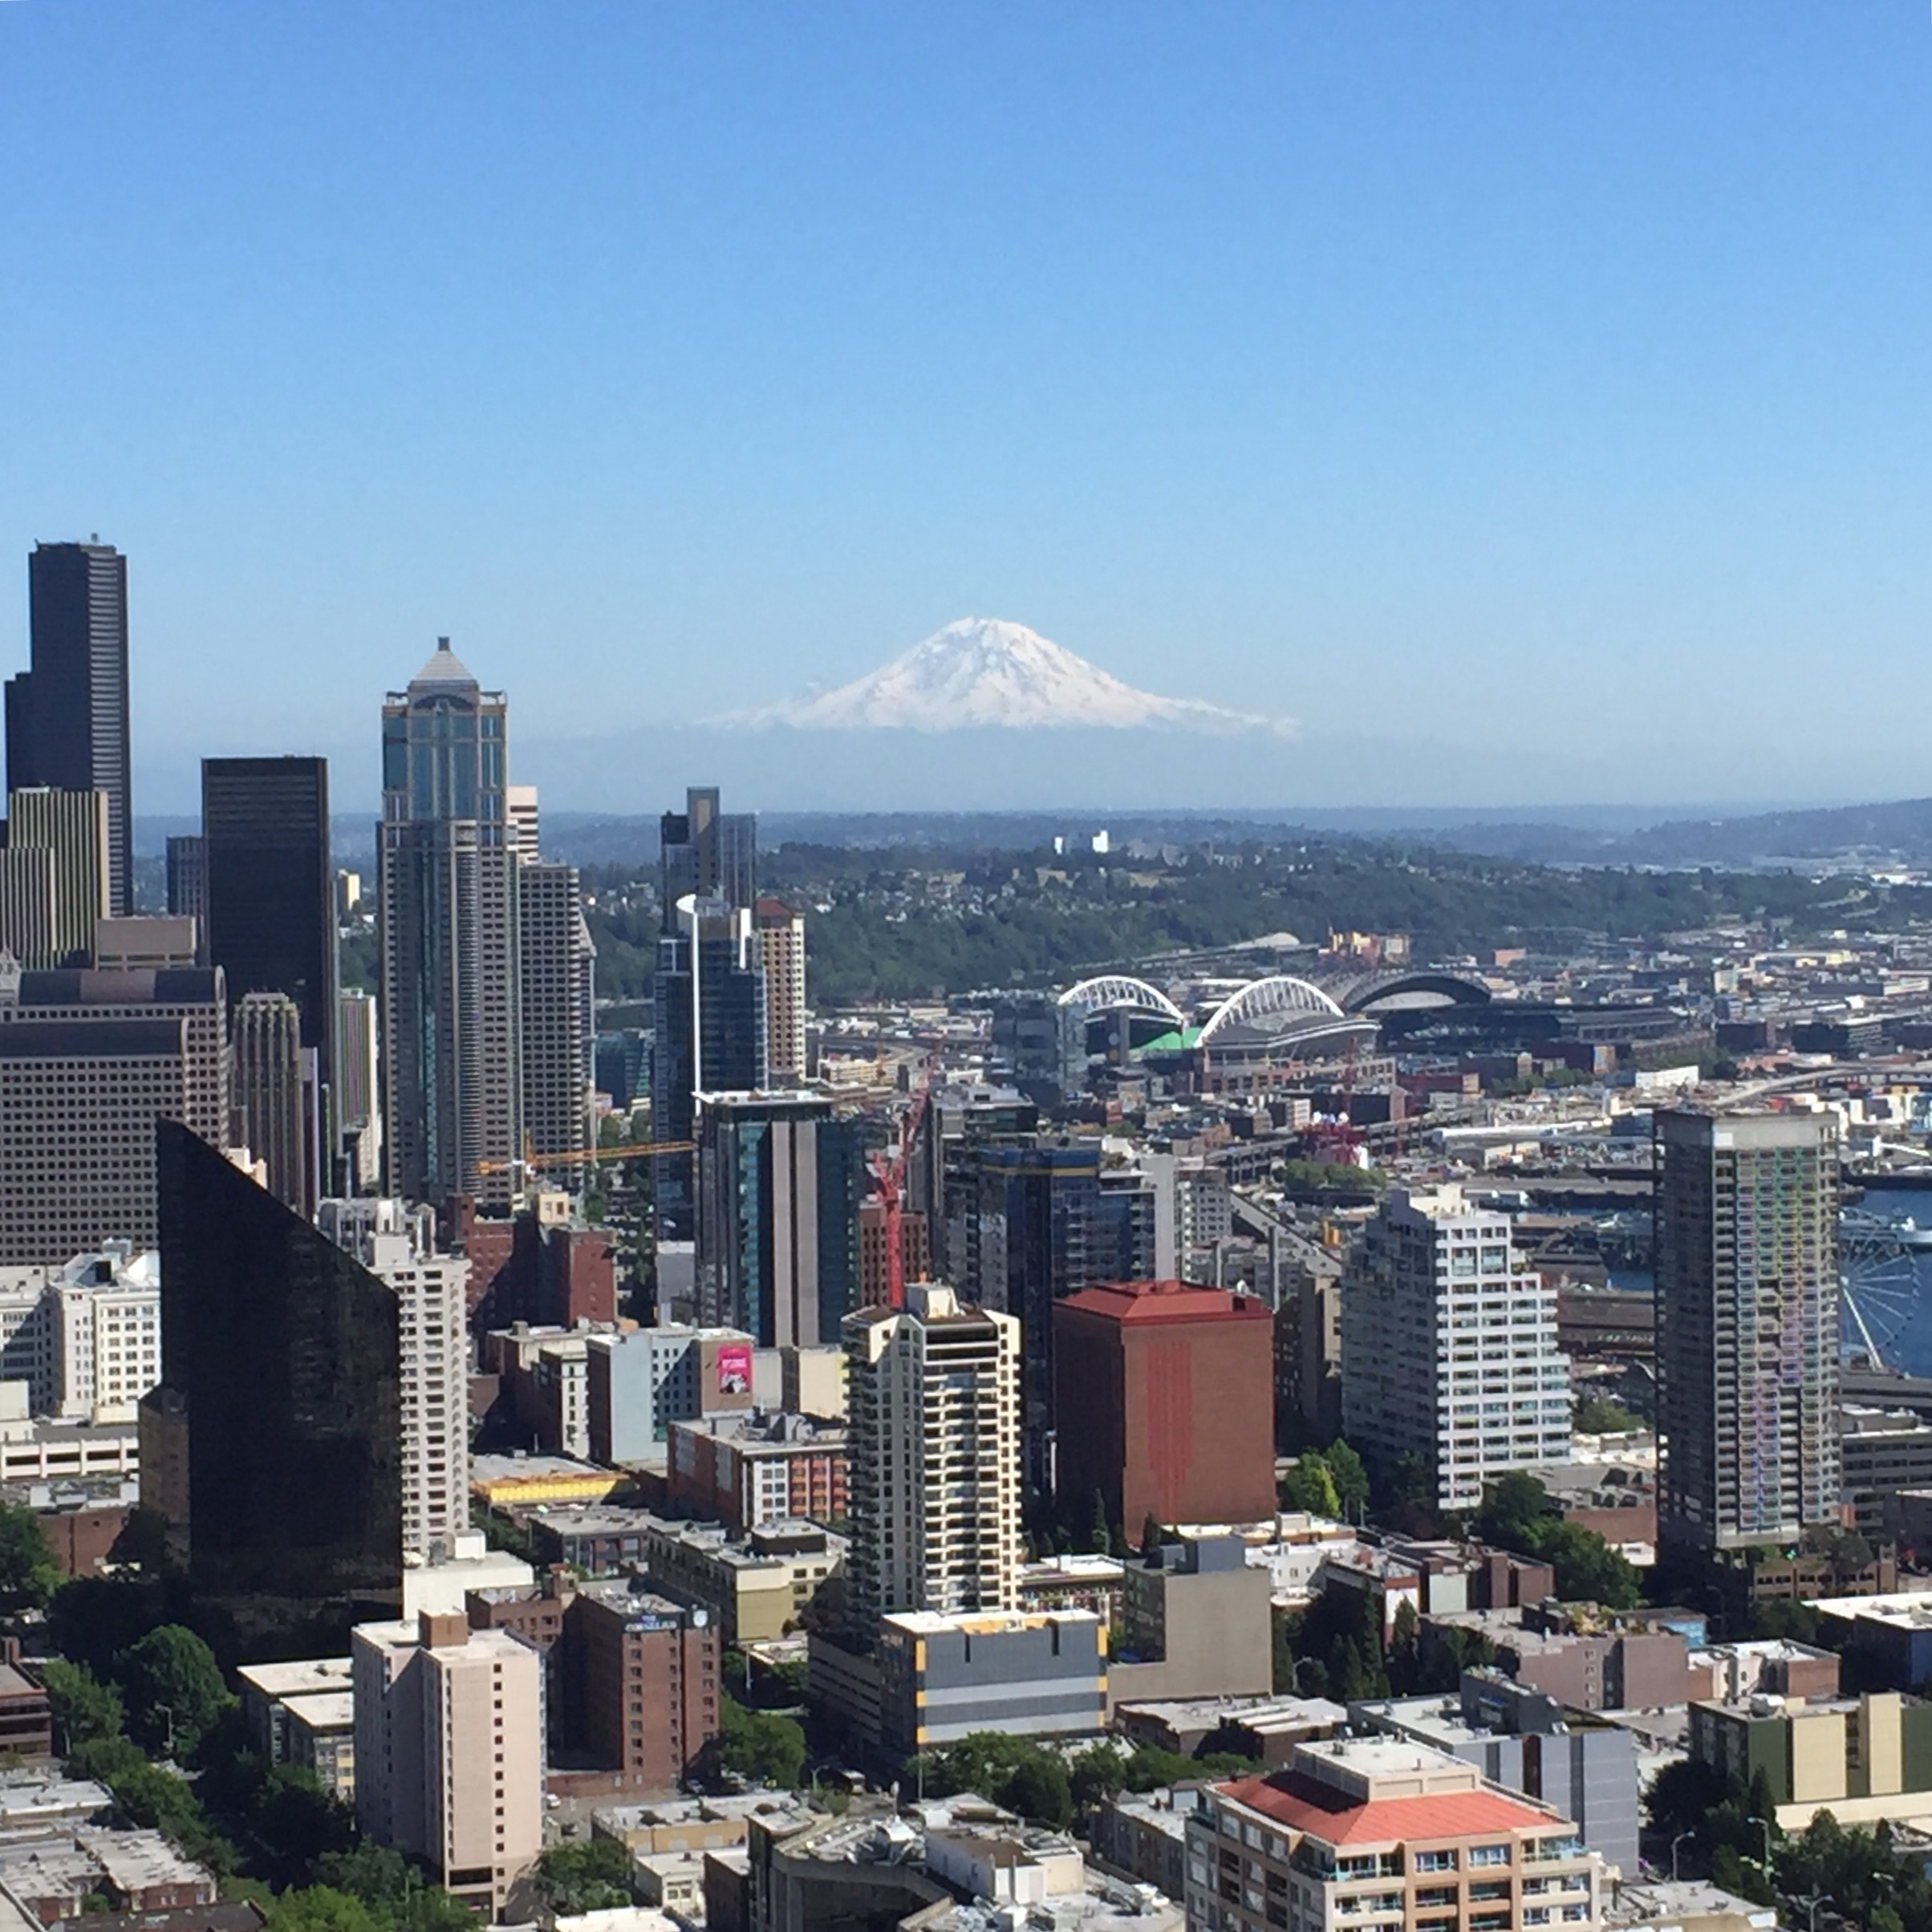 Viewing my Accomplishment from Seattle